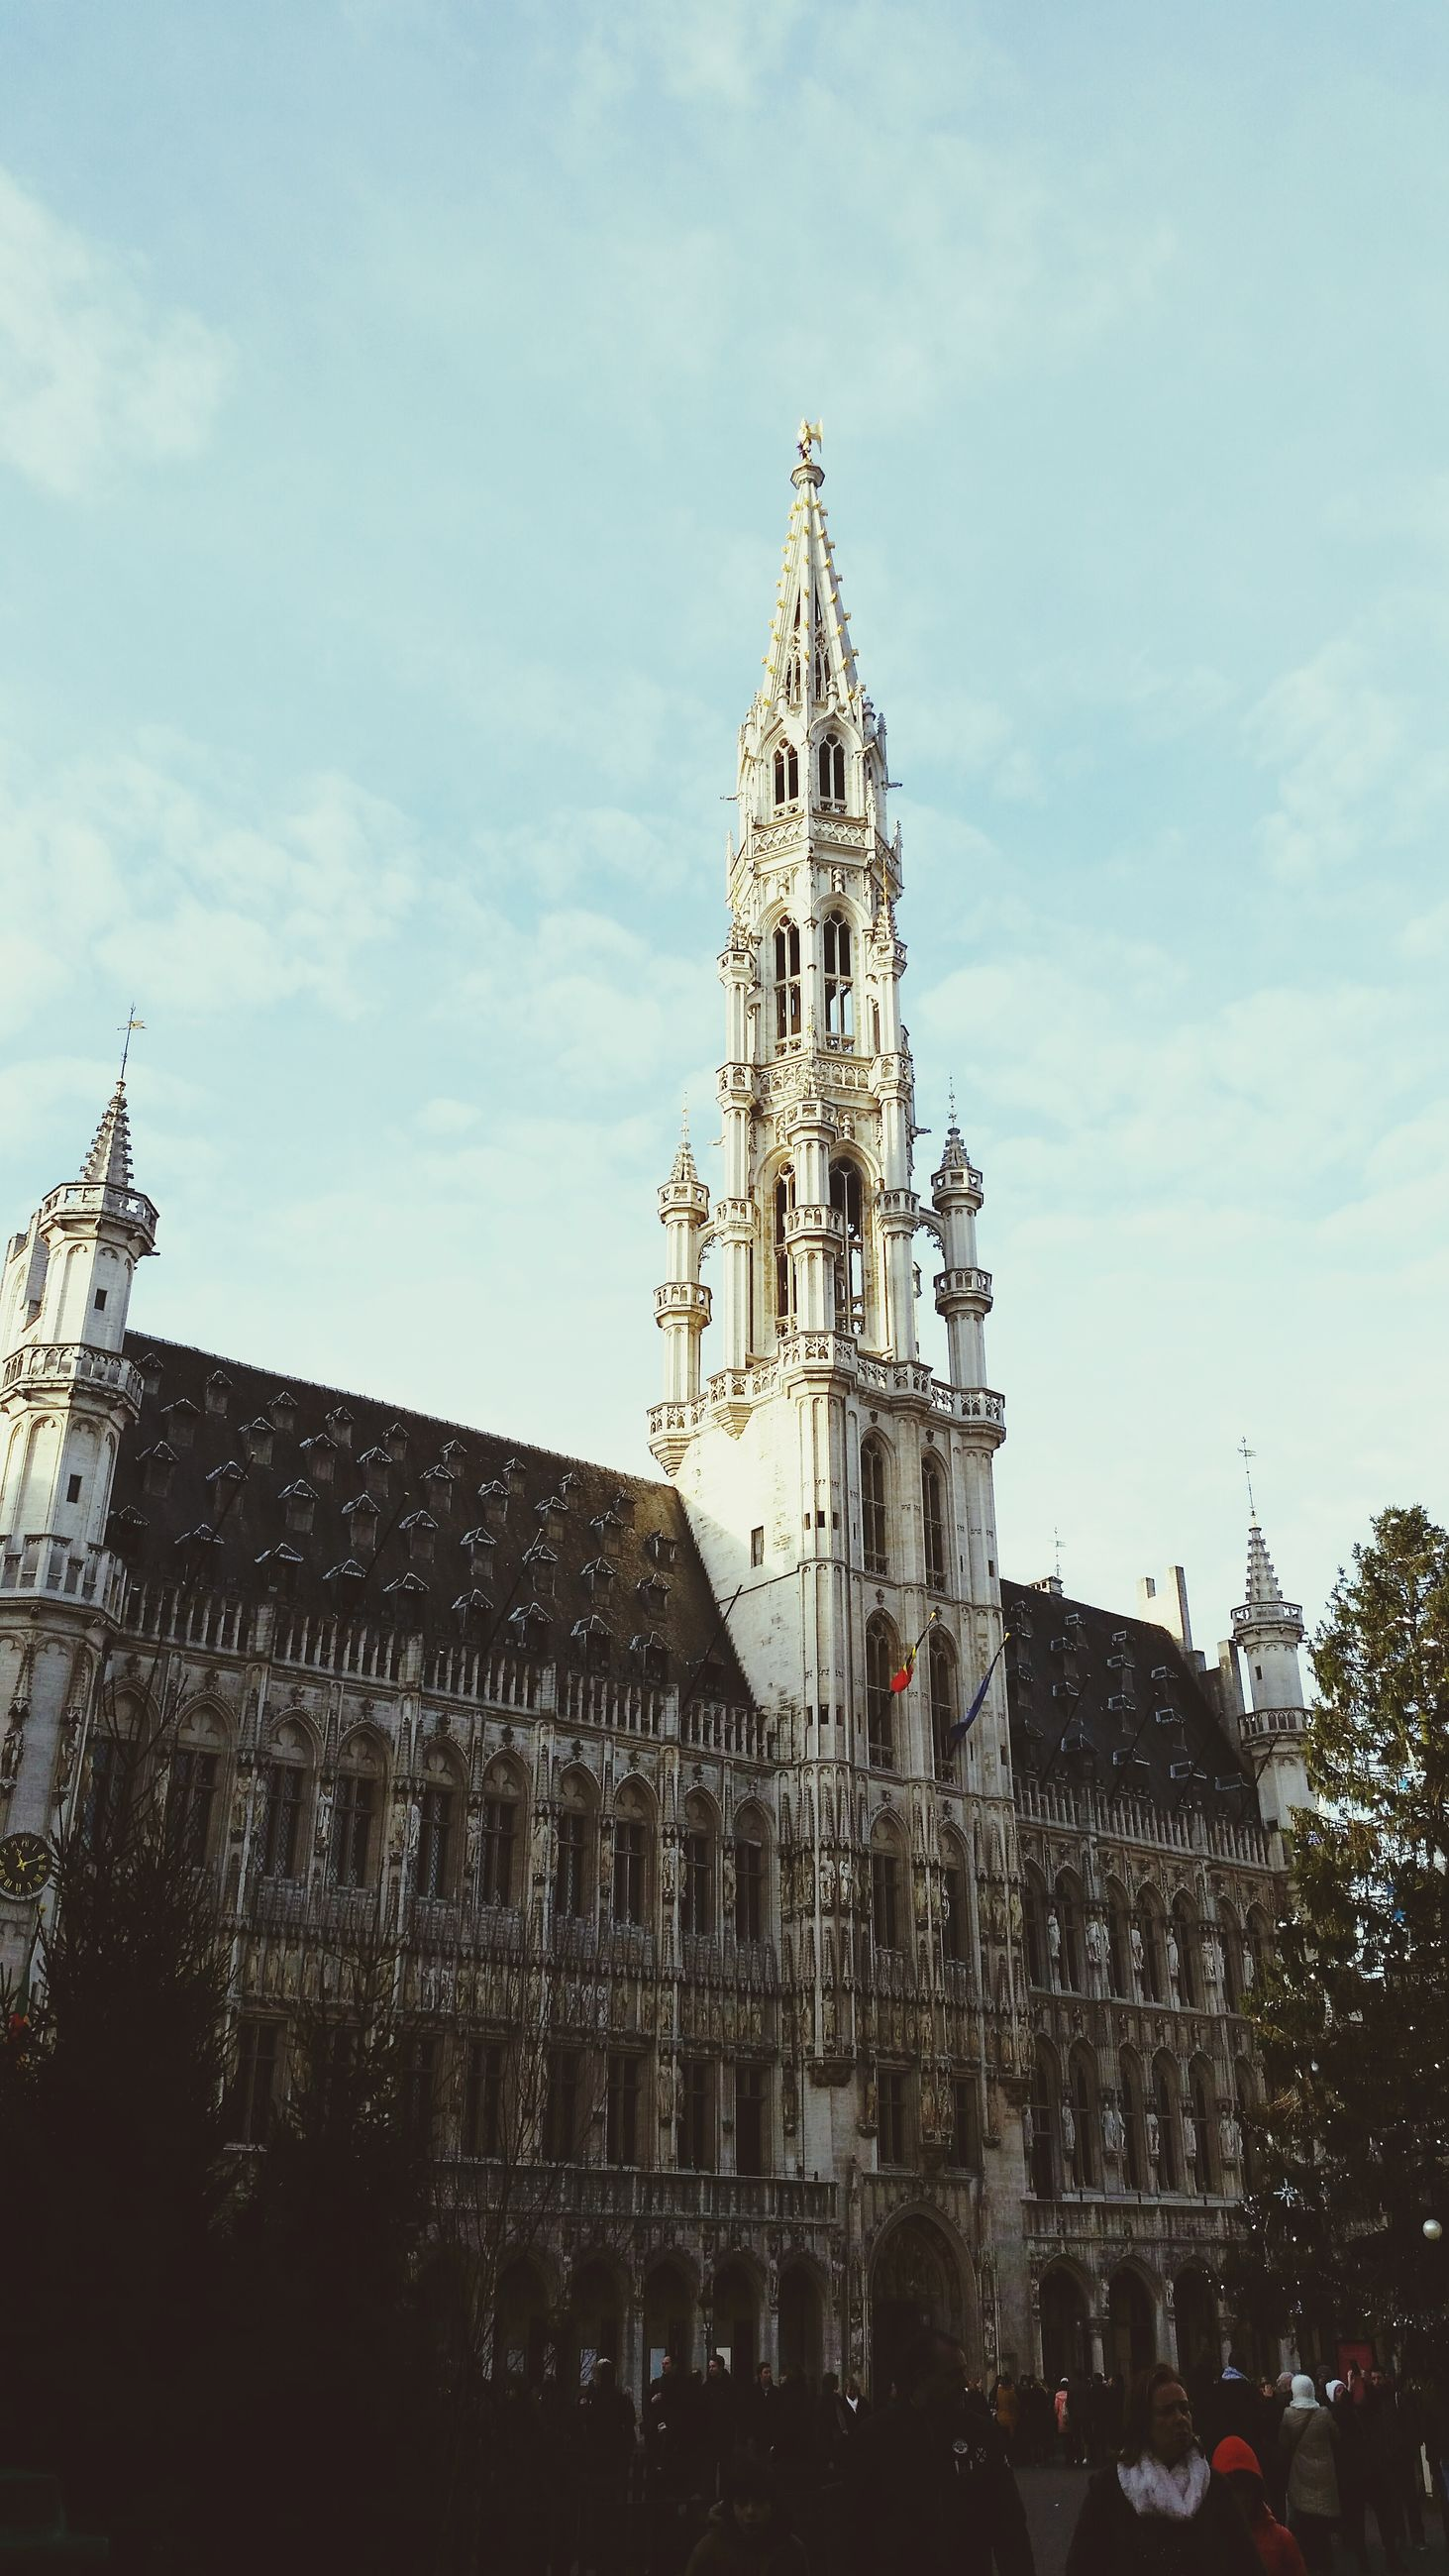 architecture, building exterior, built structure, religion, church, place of worship, spirituality, cathedral, low angle view, sky, tower, famous place, travel destinations, clock tower, city, tall - high, steeple, tourism